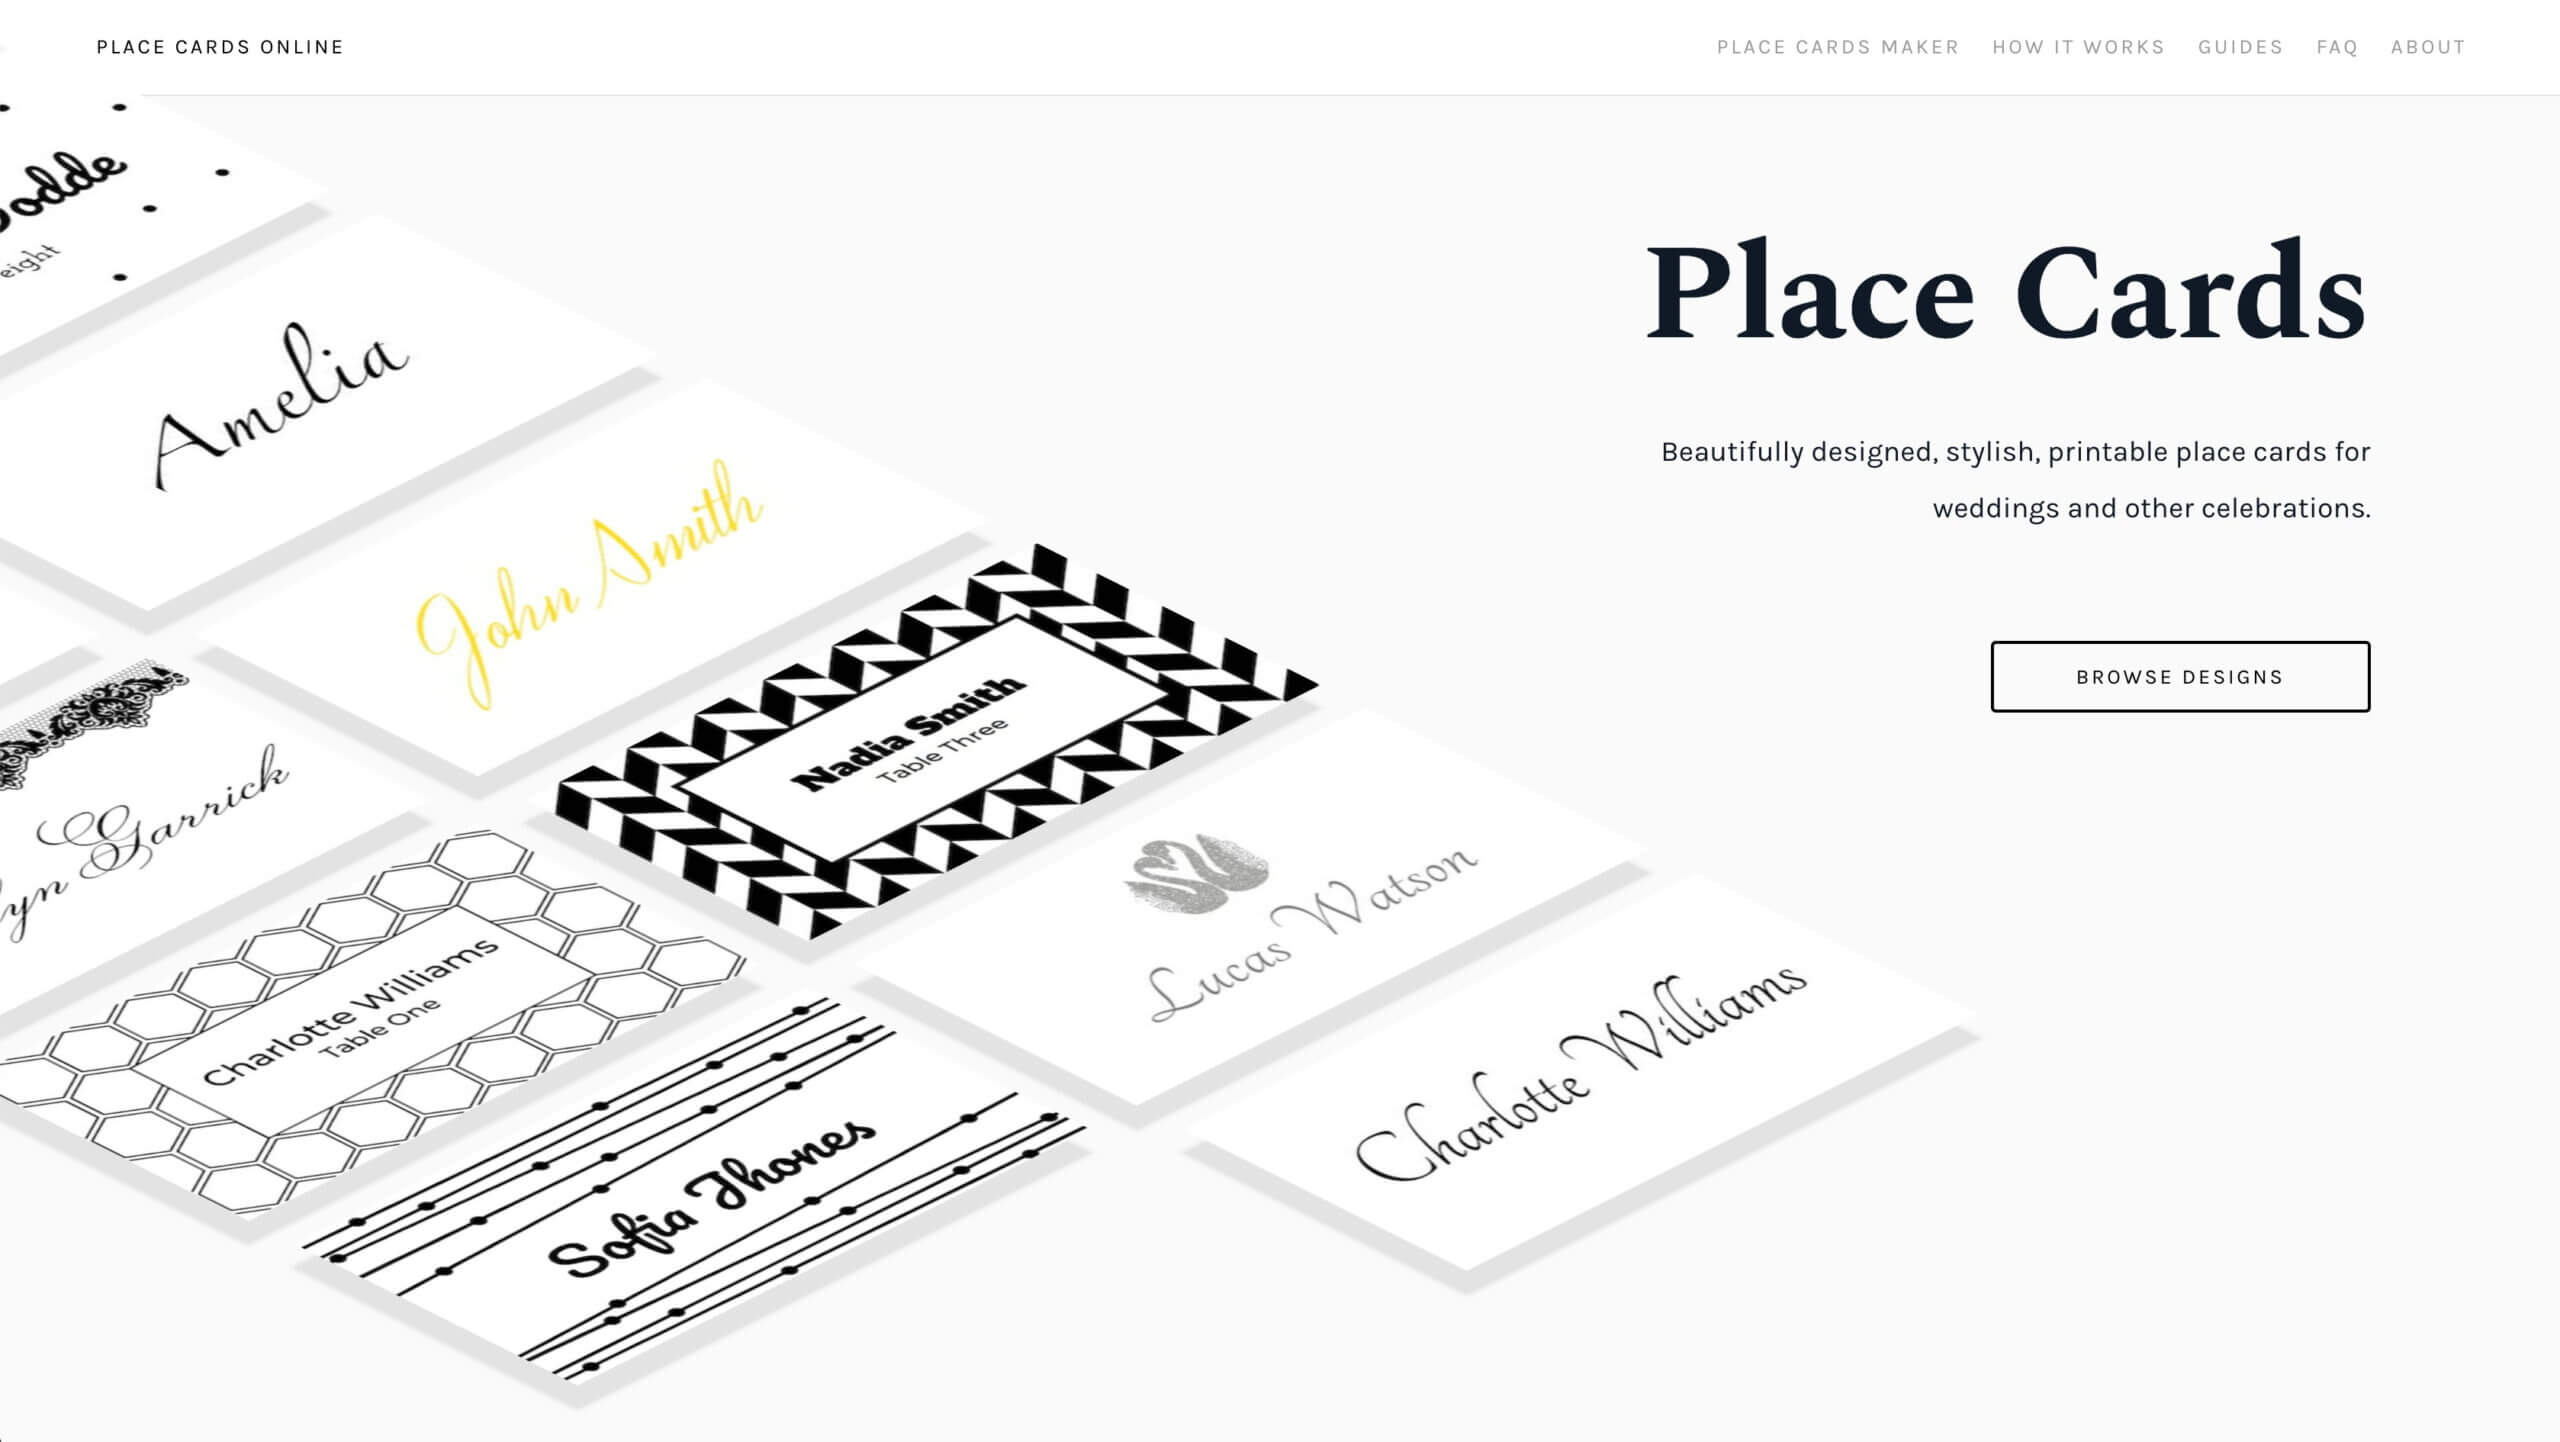 Place Cards Online - Place Cards Maker. Beautifully Designed In Celebrate It Templates Place Cards